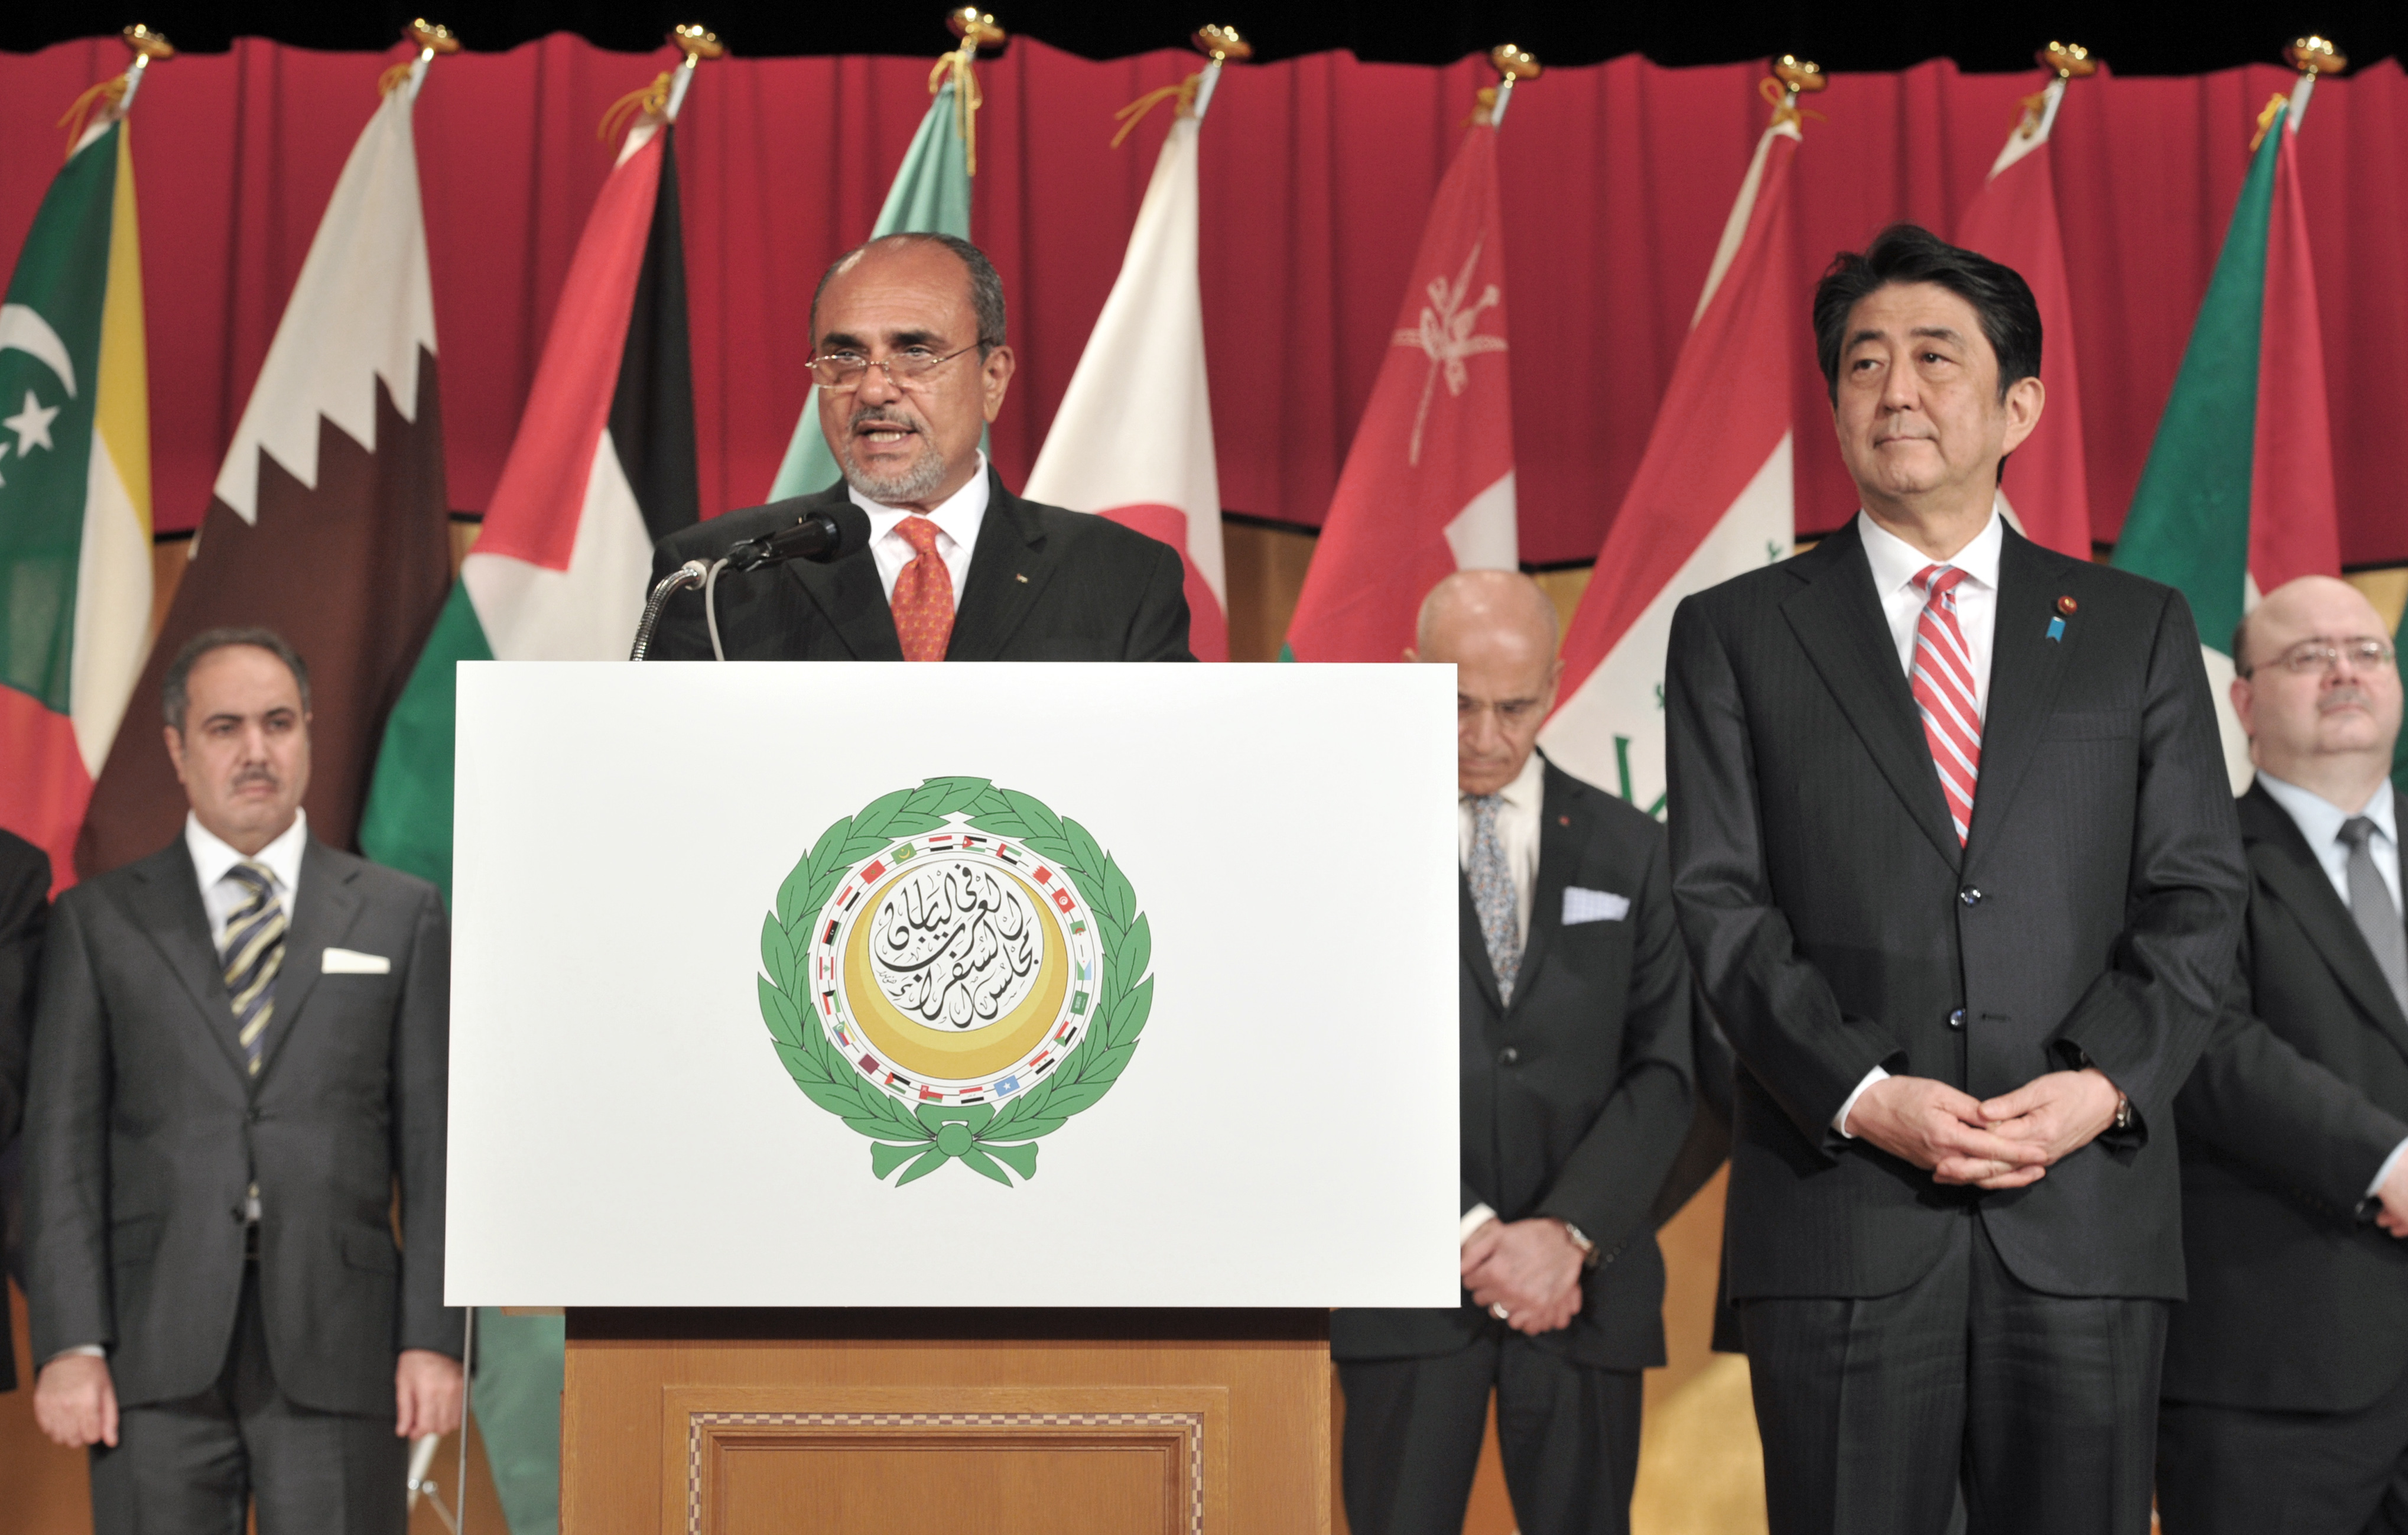 Prime Minister Shinzo Abe (second from right) looks on as Palestine representative in Japan and Dean of the Arab Diplomatic Corps Waleed Siam (second from left) speaks to mark the eighth Arab Week reception and in celebration of Arab-Japan friendship. | YOSHIAKI MIURA